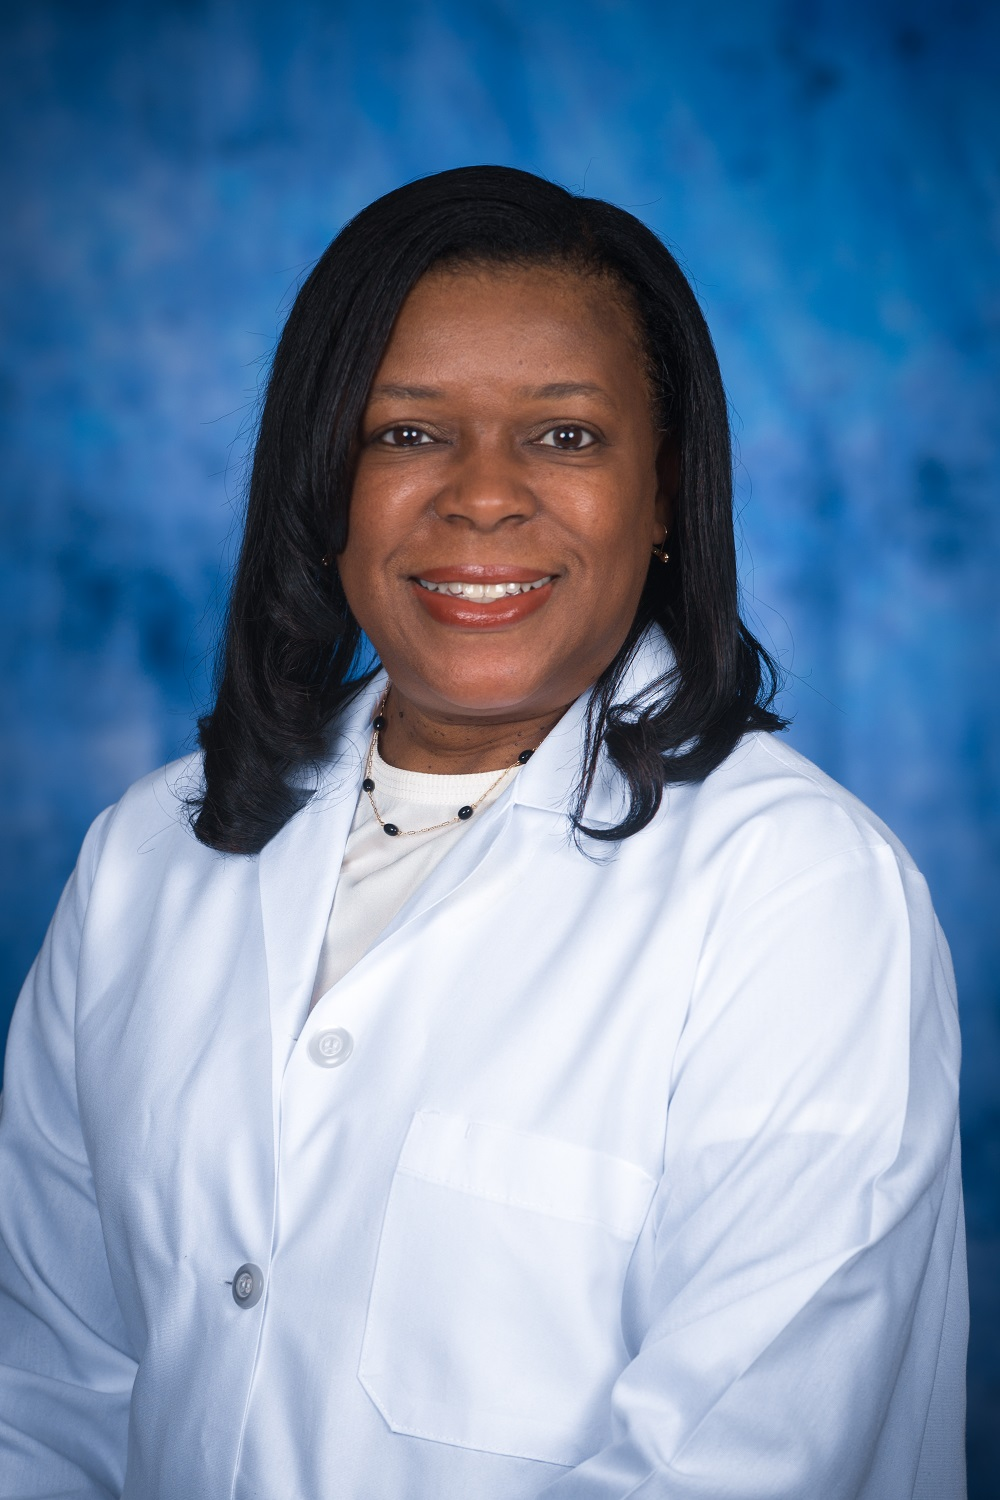 Kim C. Brooks, MD is a member of the OBGYN team at Women's Healthcare of Morristown